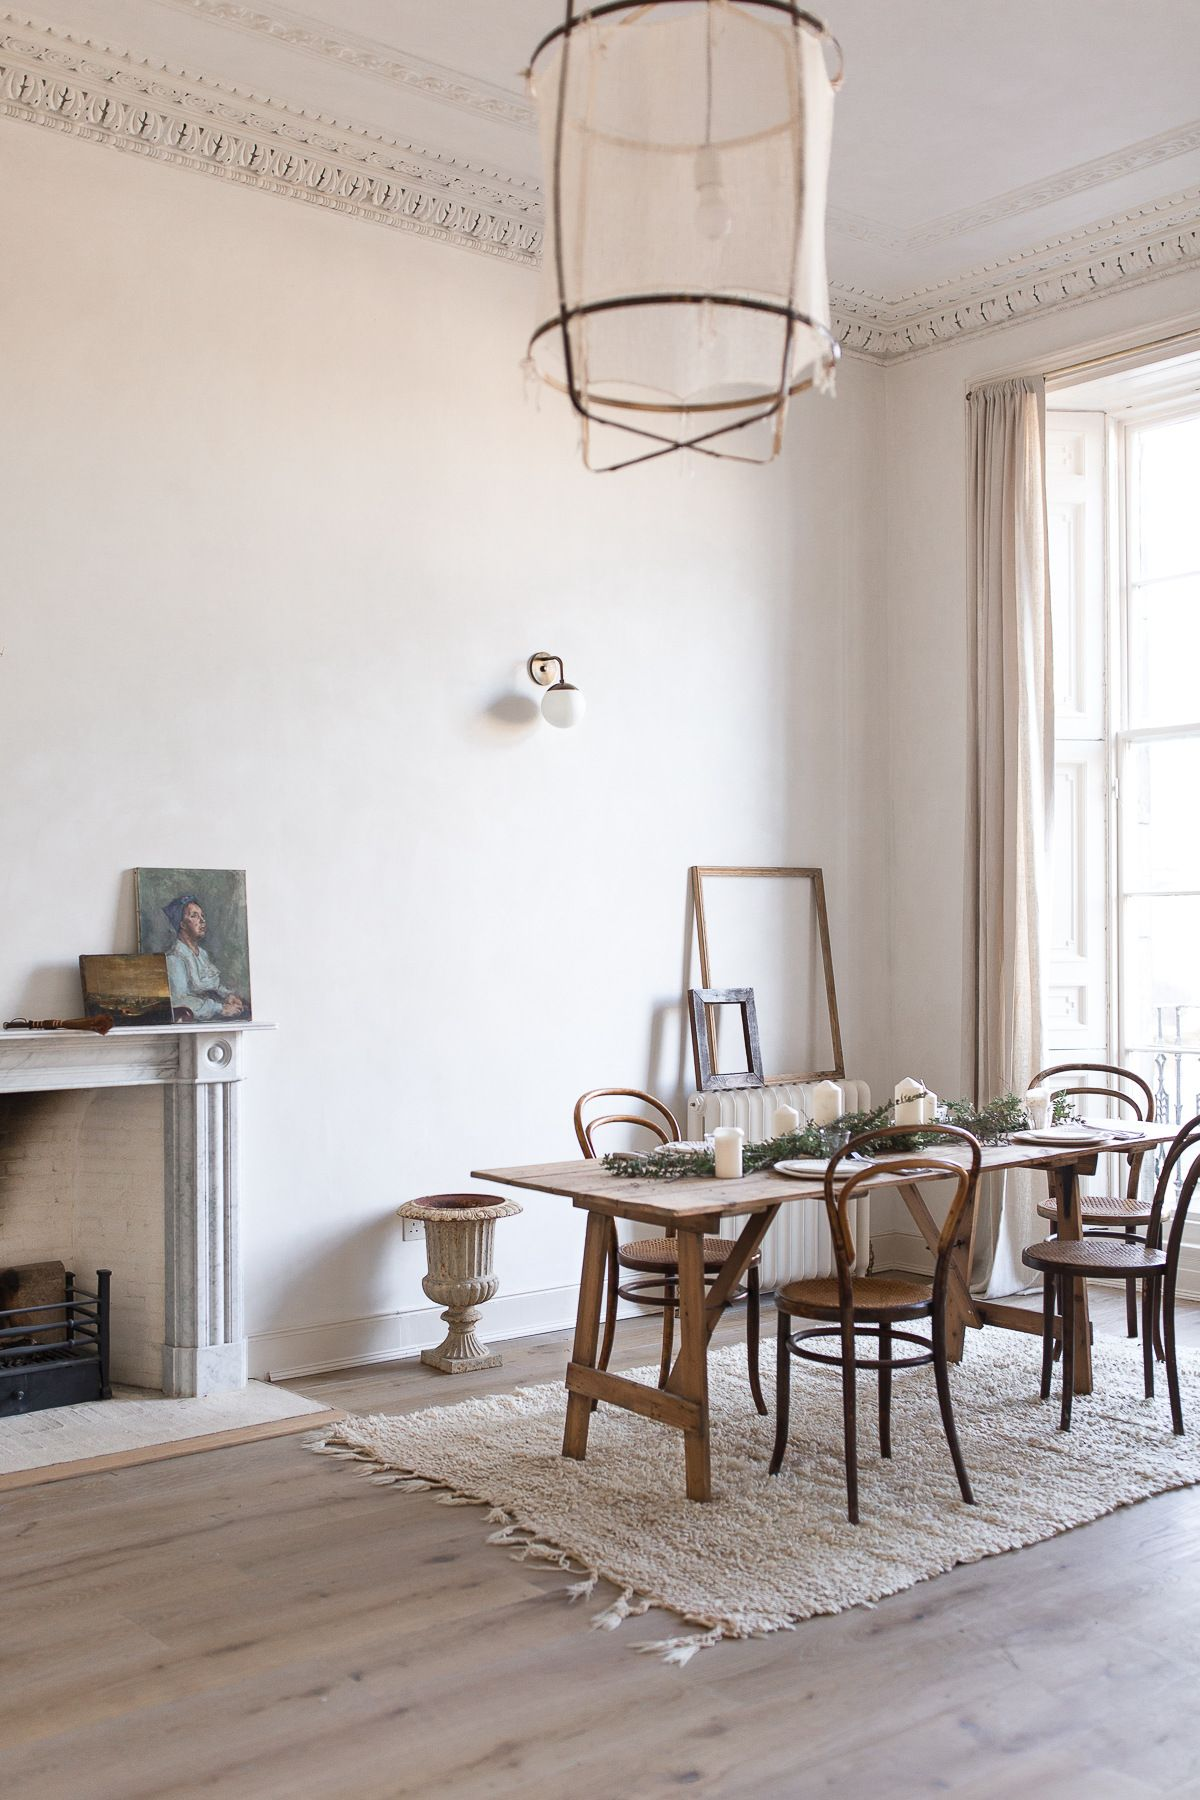 At Home and Work with the Nina Plummer of Online Interiors